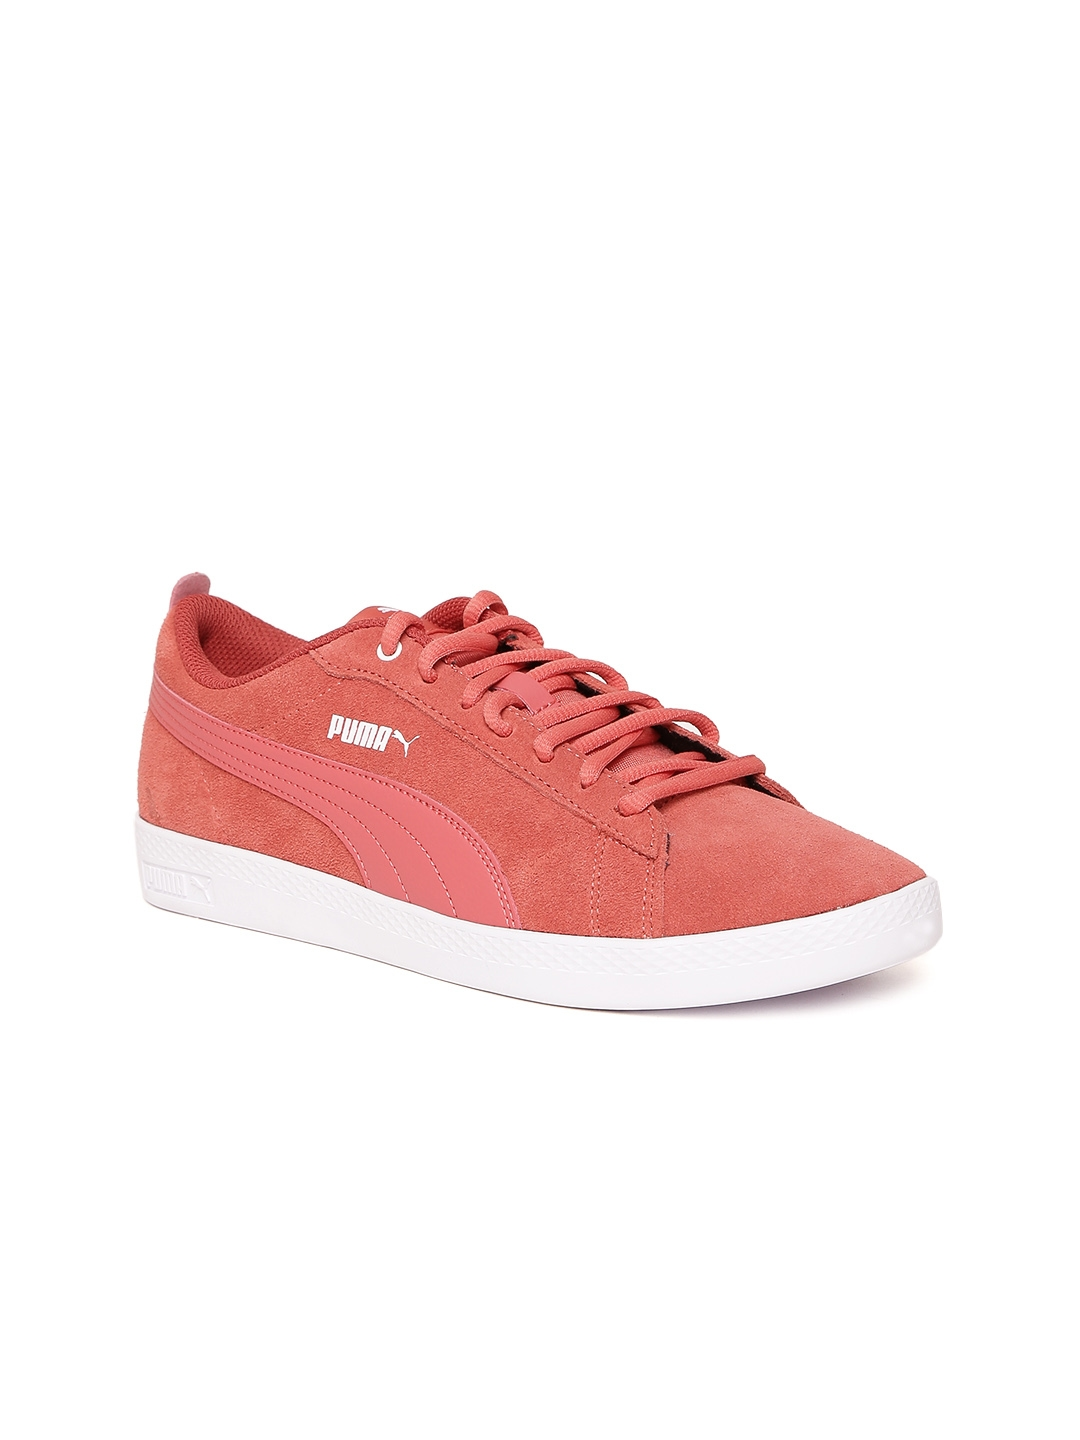 05dd52c9d83 Buy Puma Women Coral Pink Smash V2 Suede Leather Sneakers - Casual ...